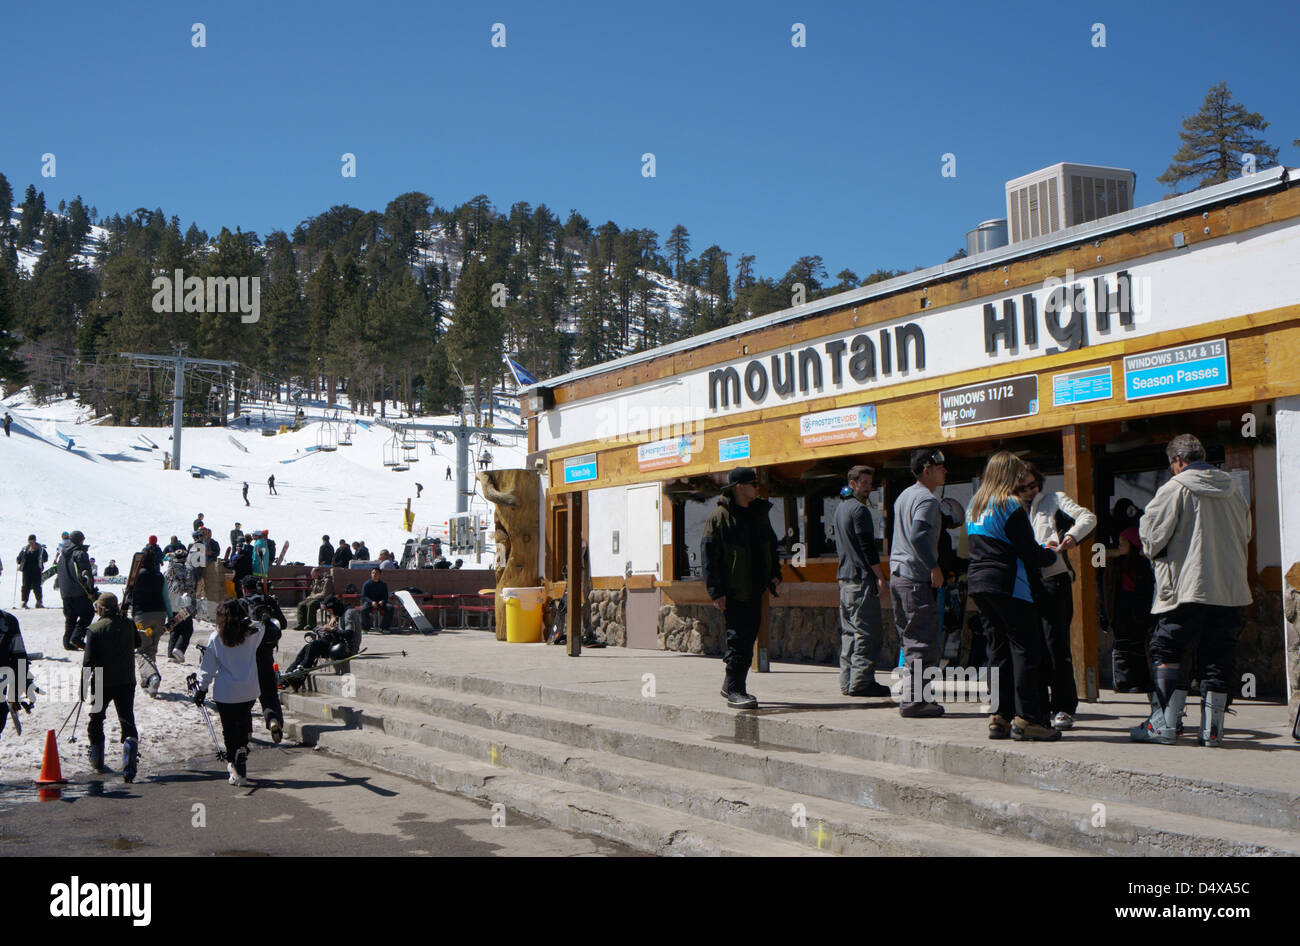 mountain high ski resort mountain high ski resort, southern stock